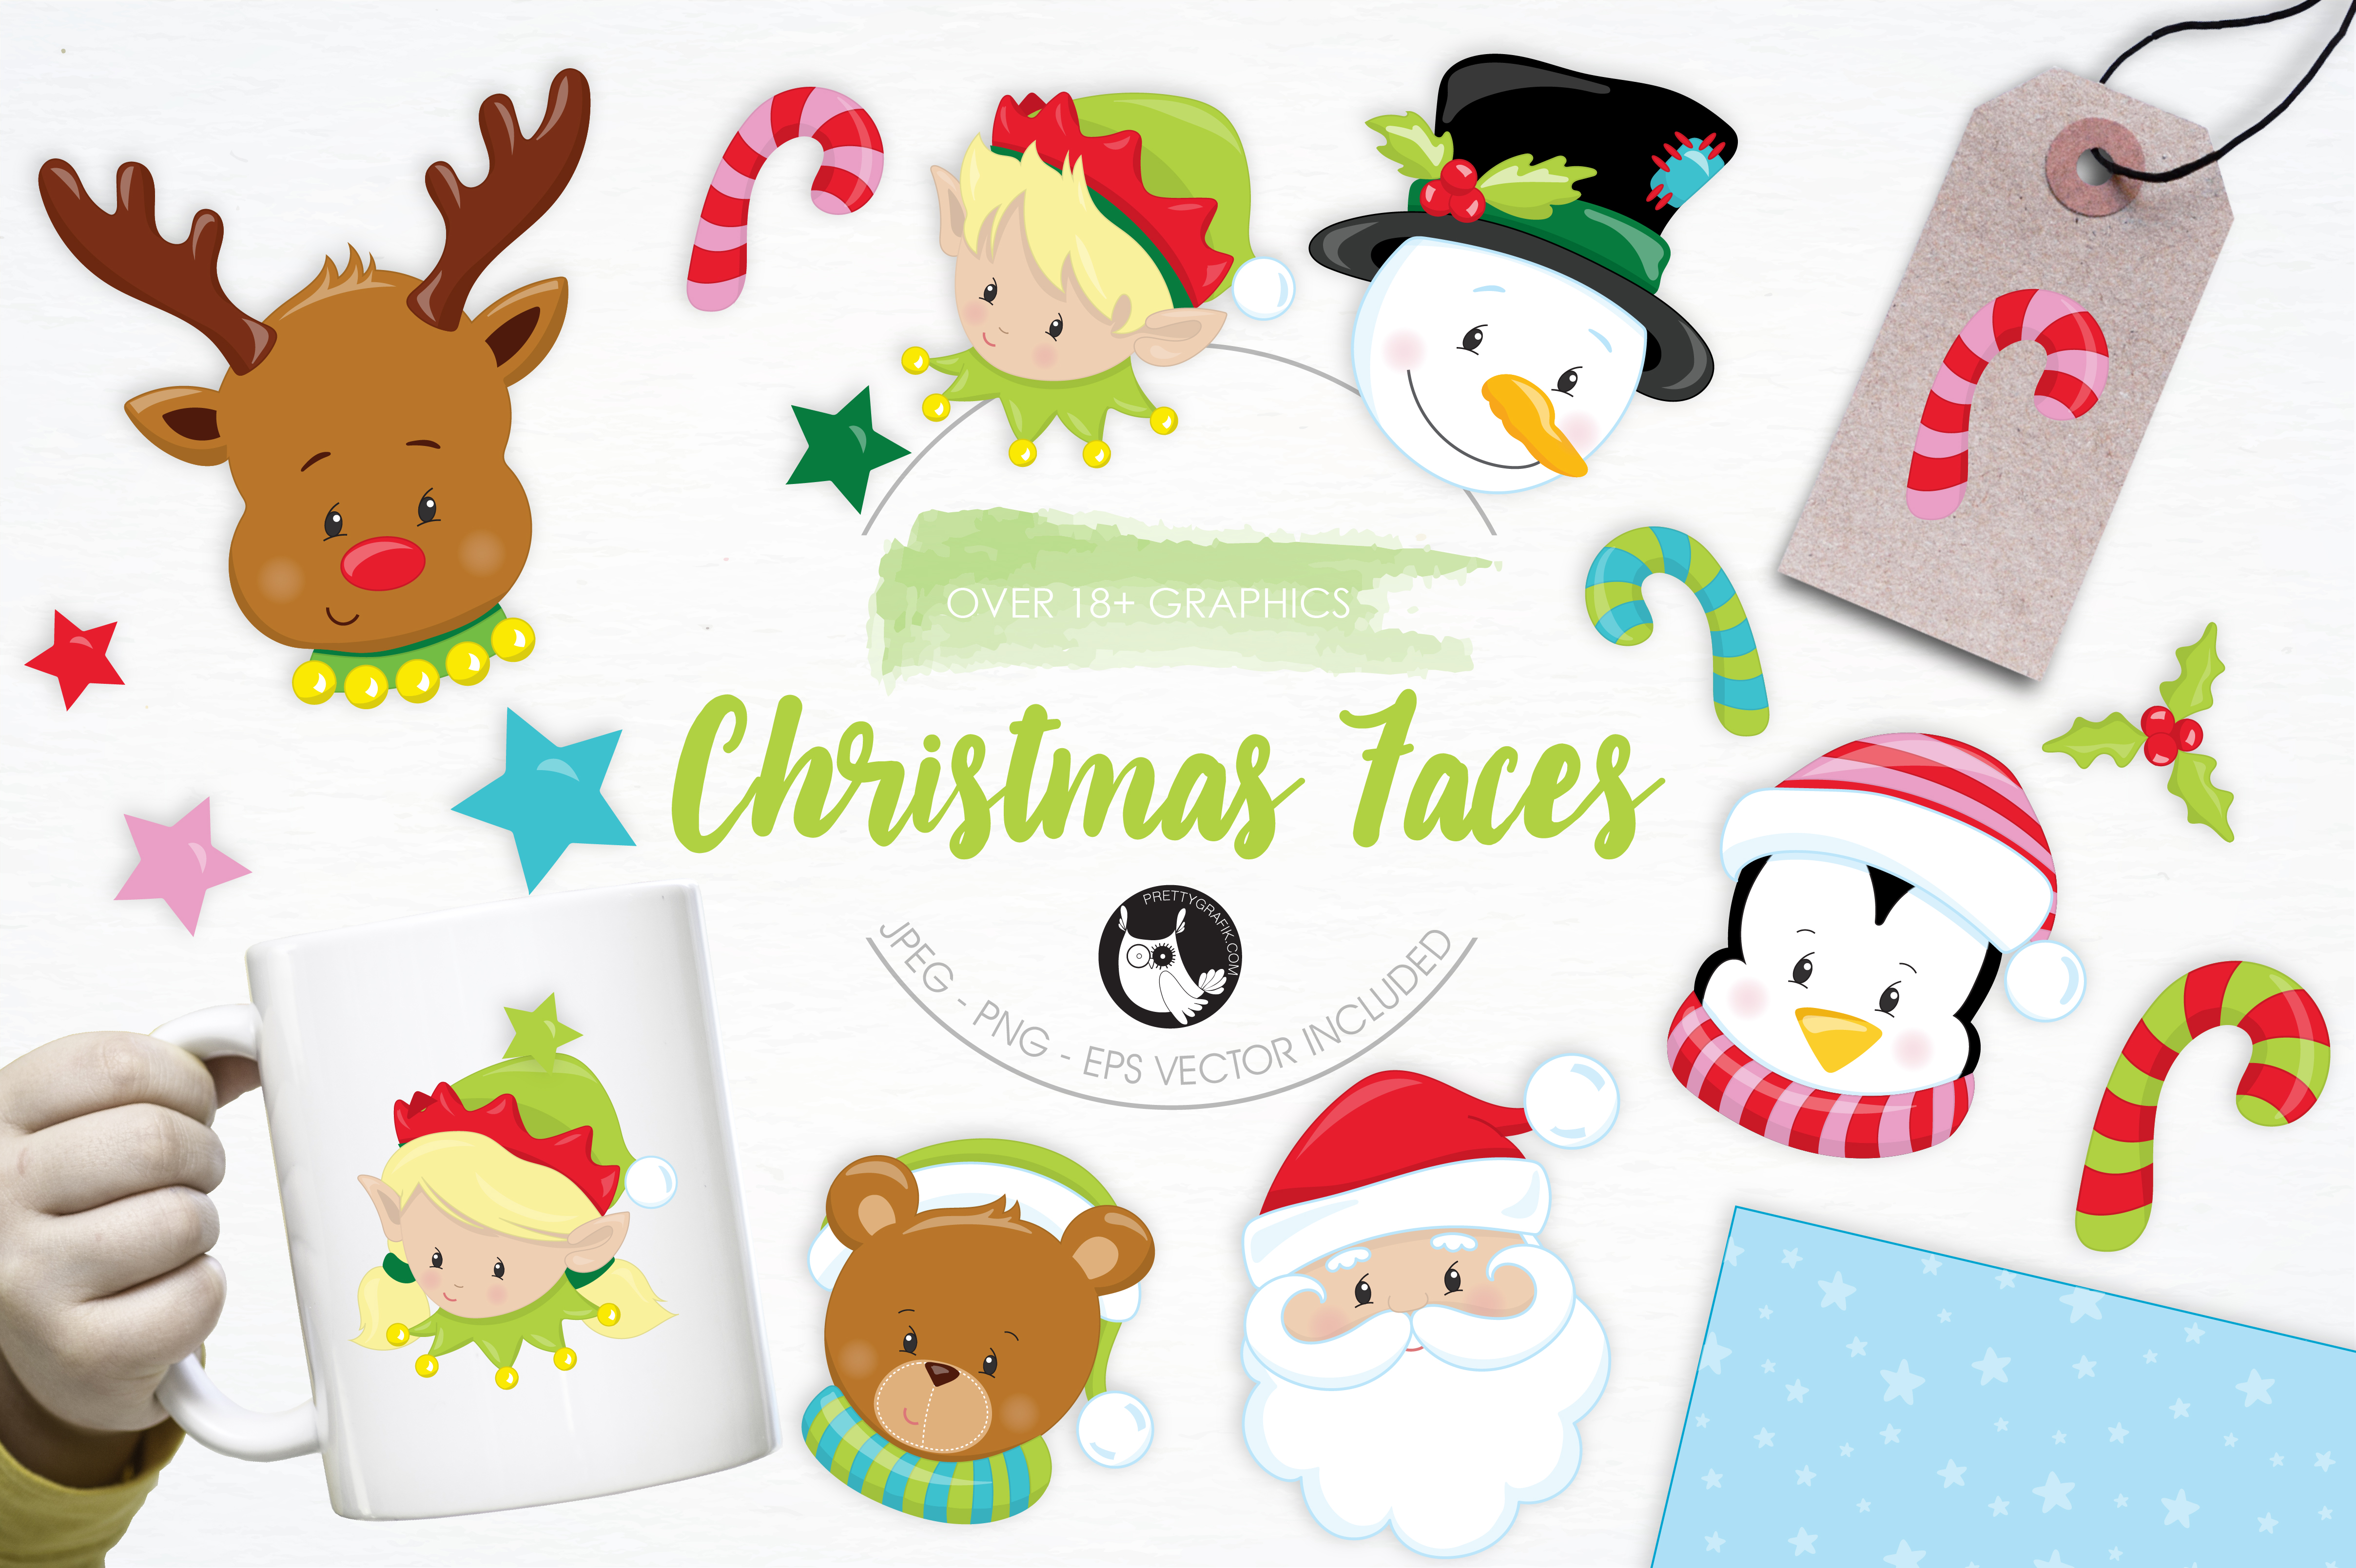 Download Free Cute Christmas Faces Graphic By Prettygrafik Creative Fabrica for Cricut Explore, Silhouette and other cutting machines.